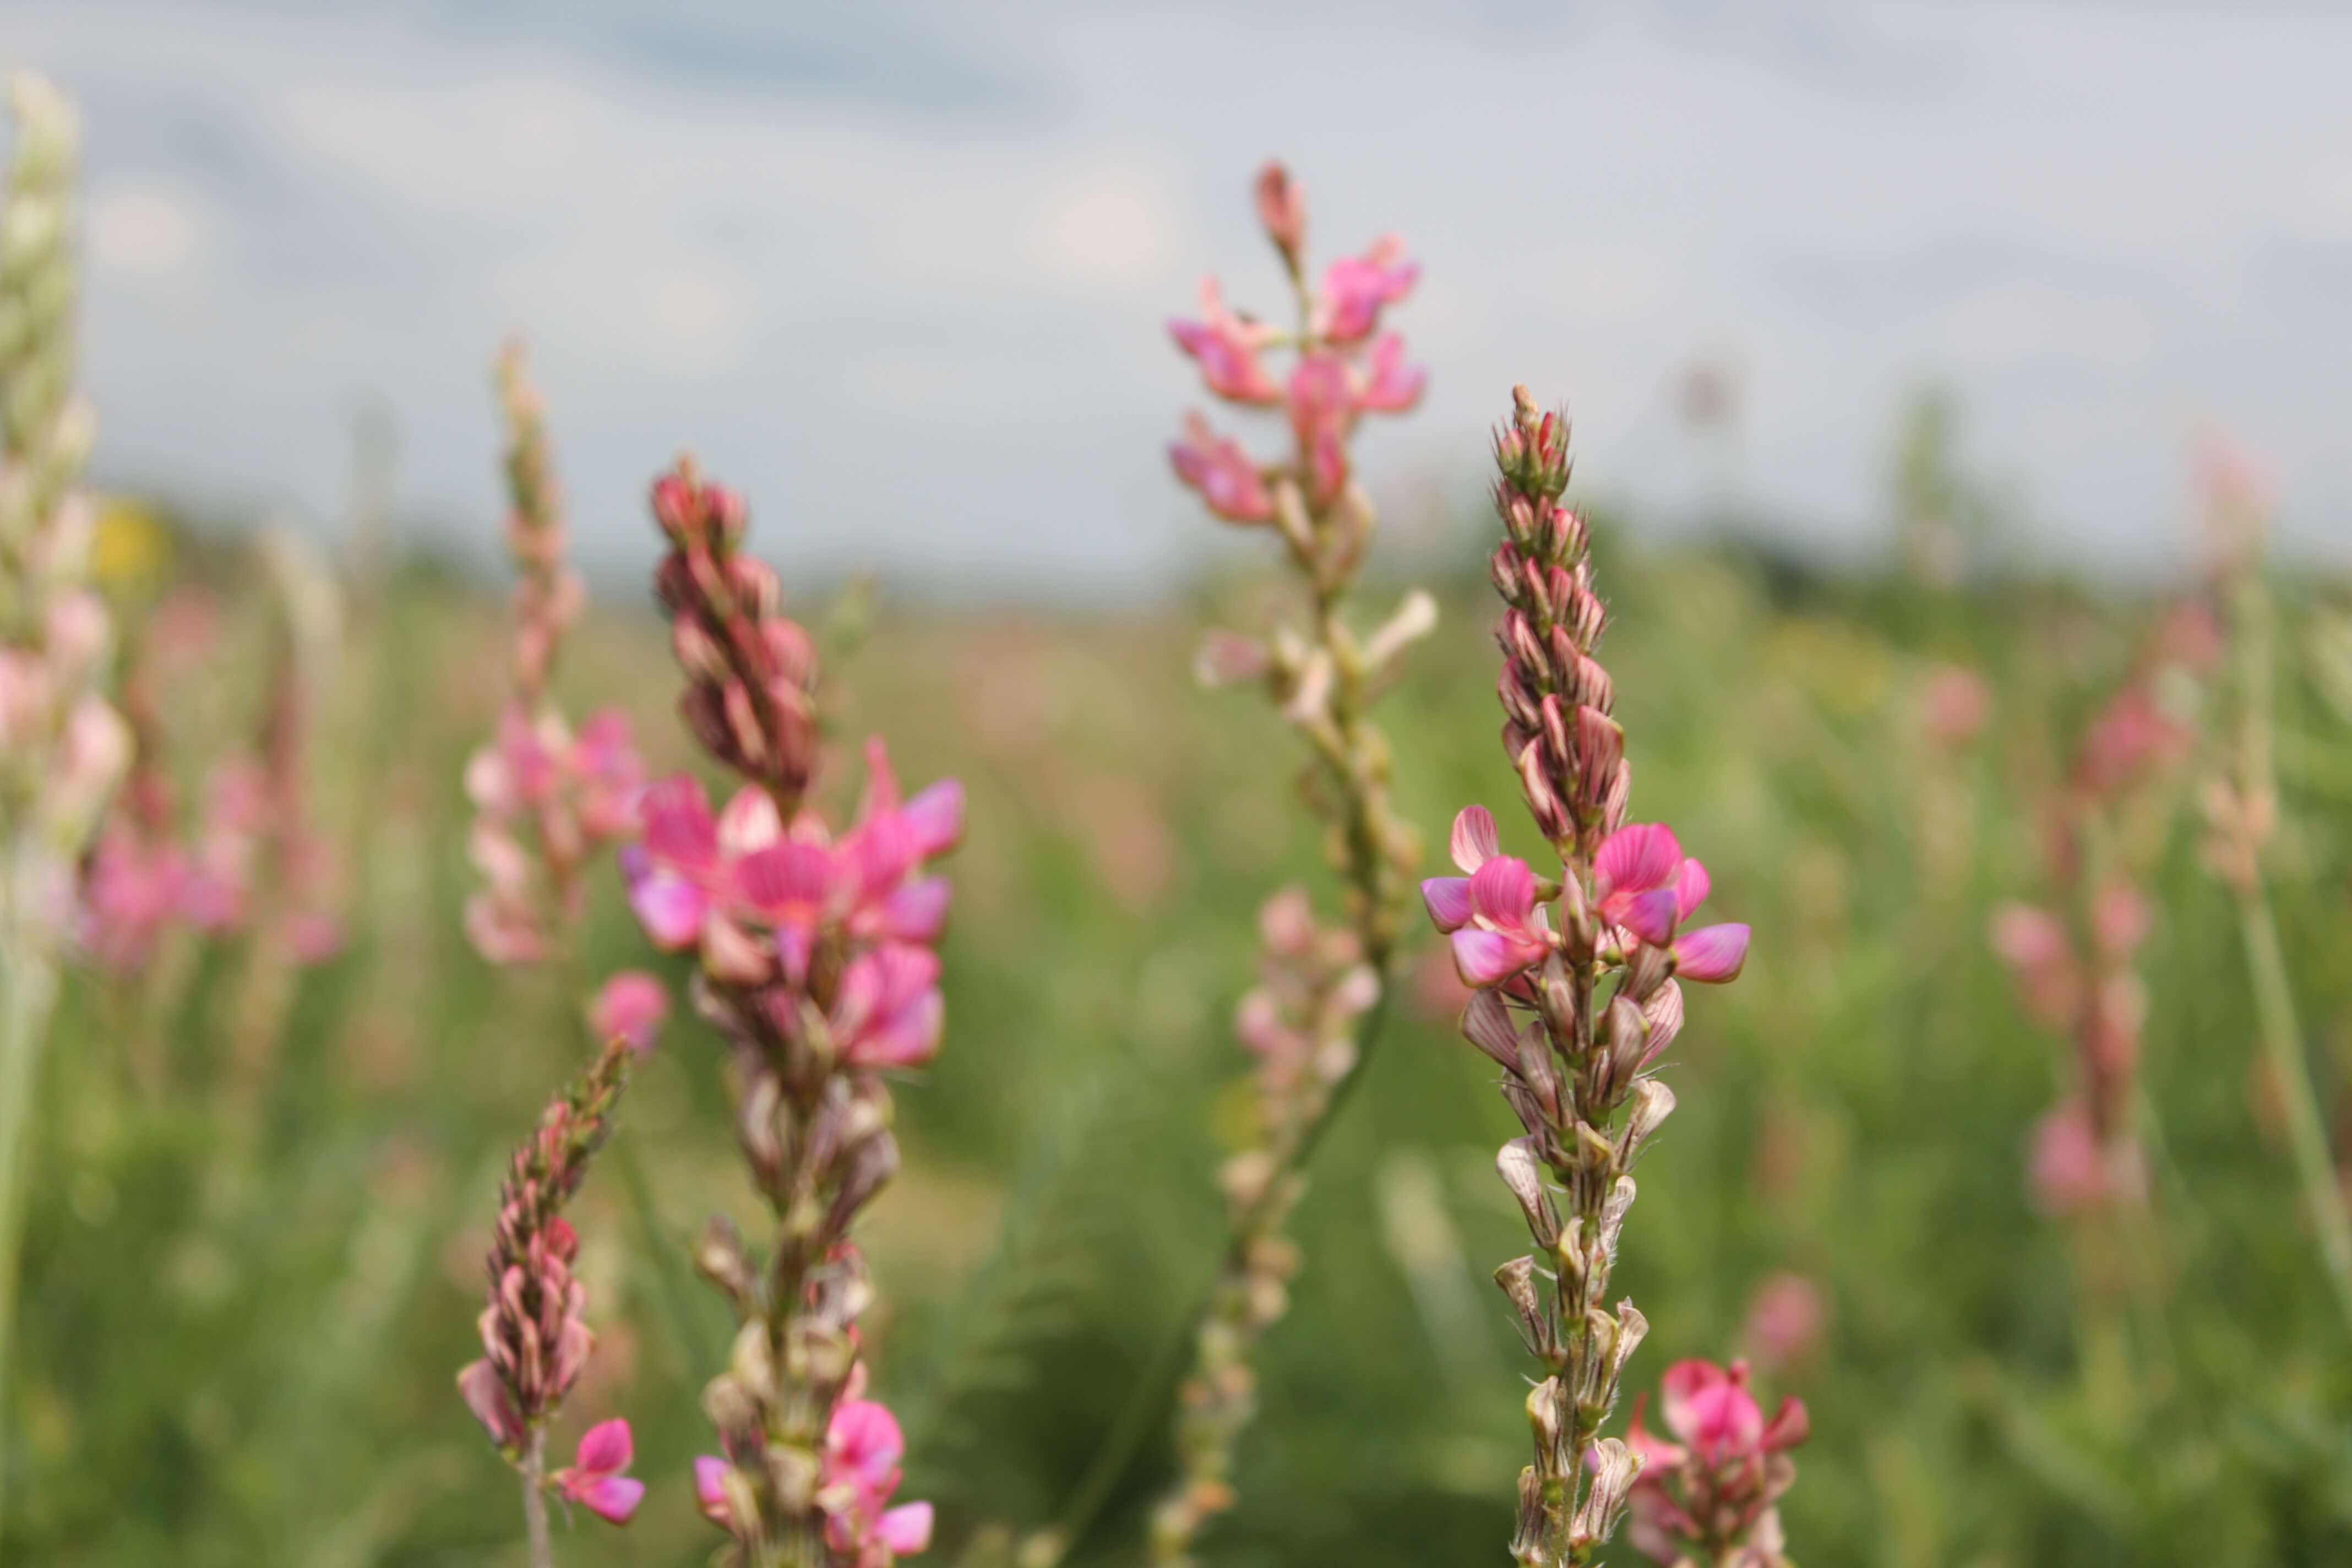 sainfoin flower closeup.JPG